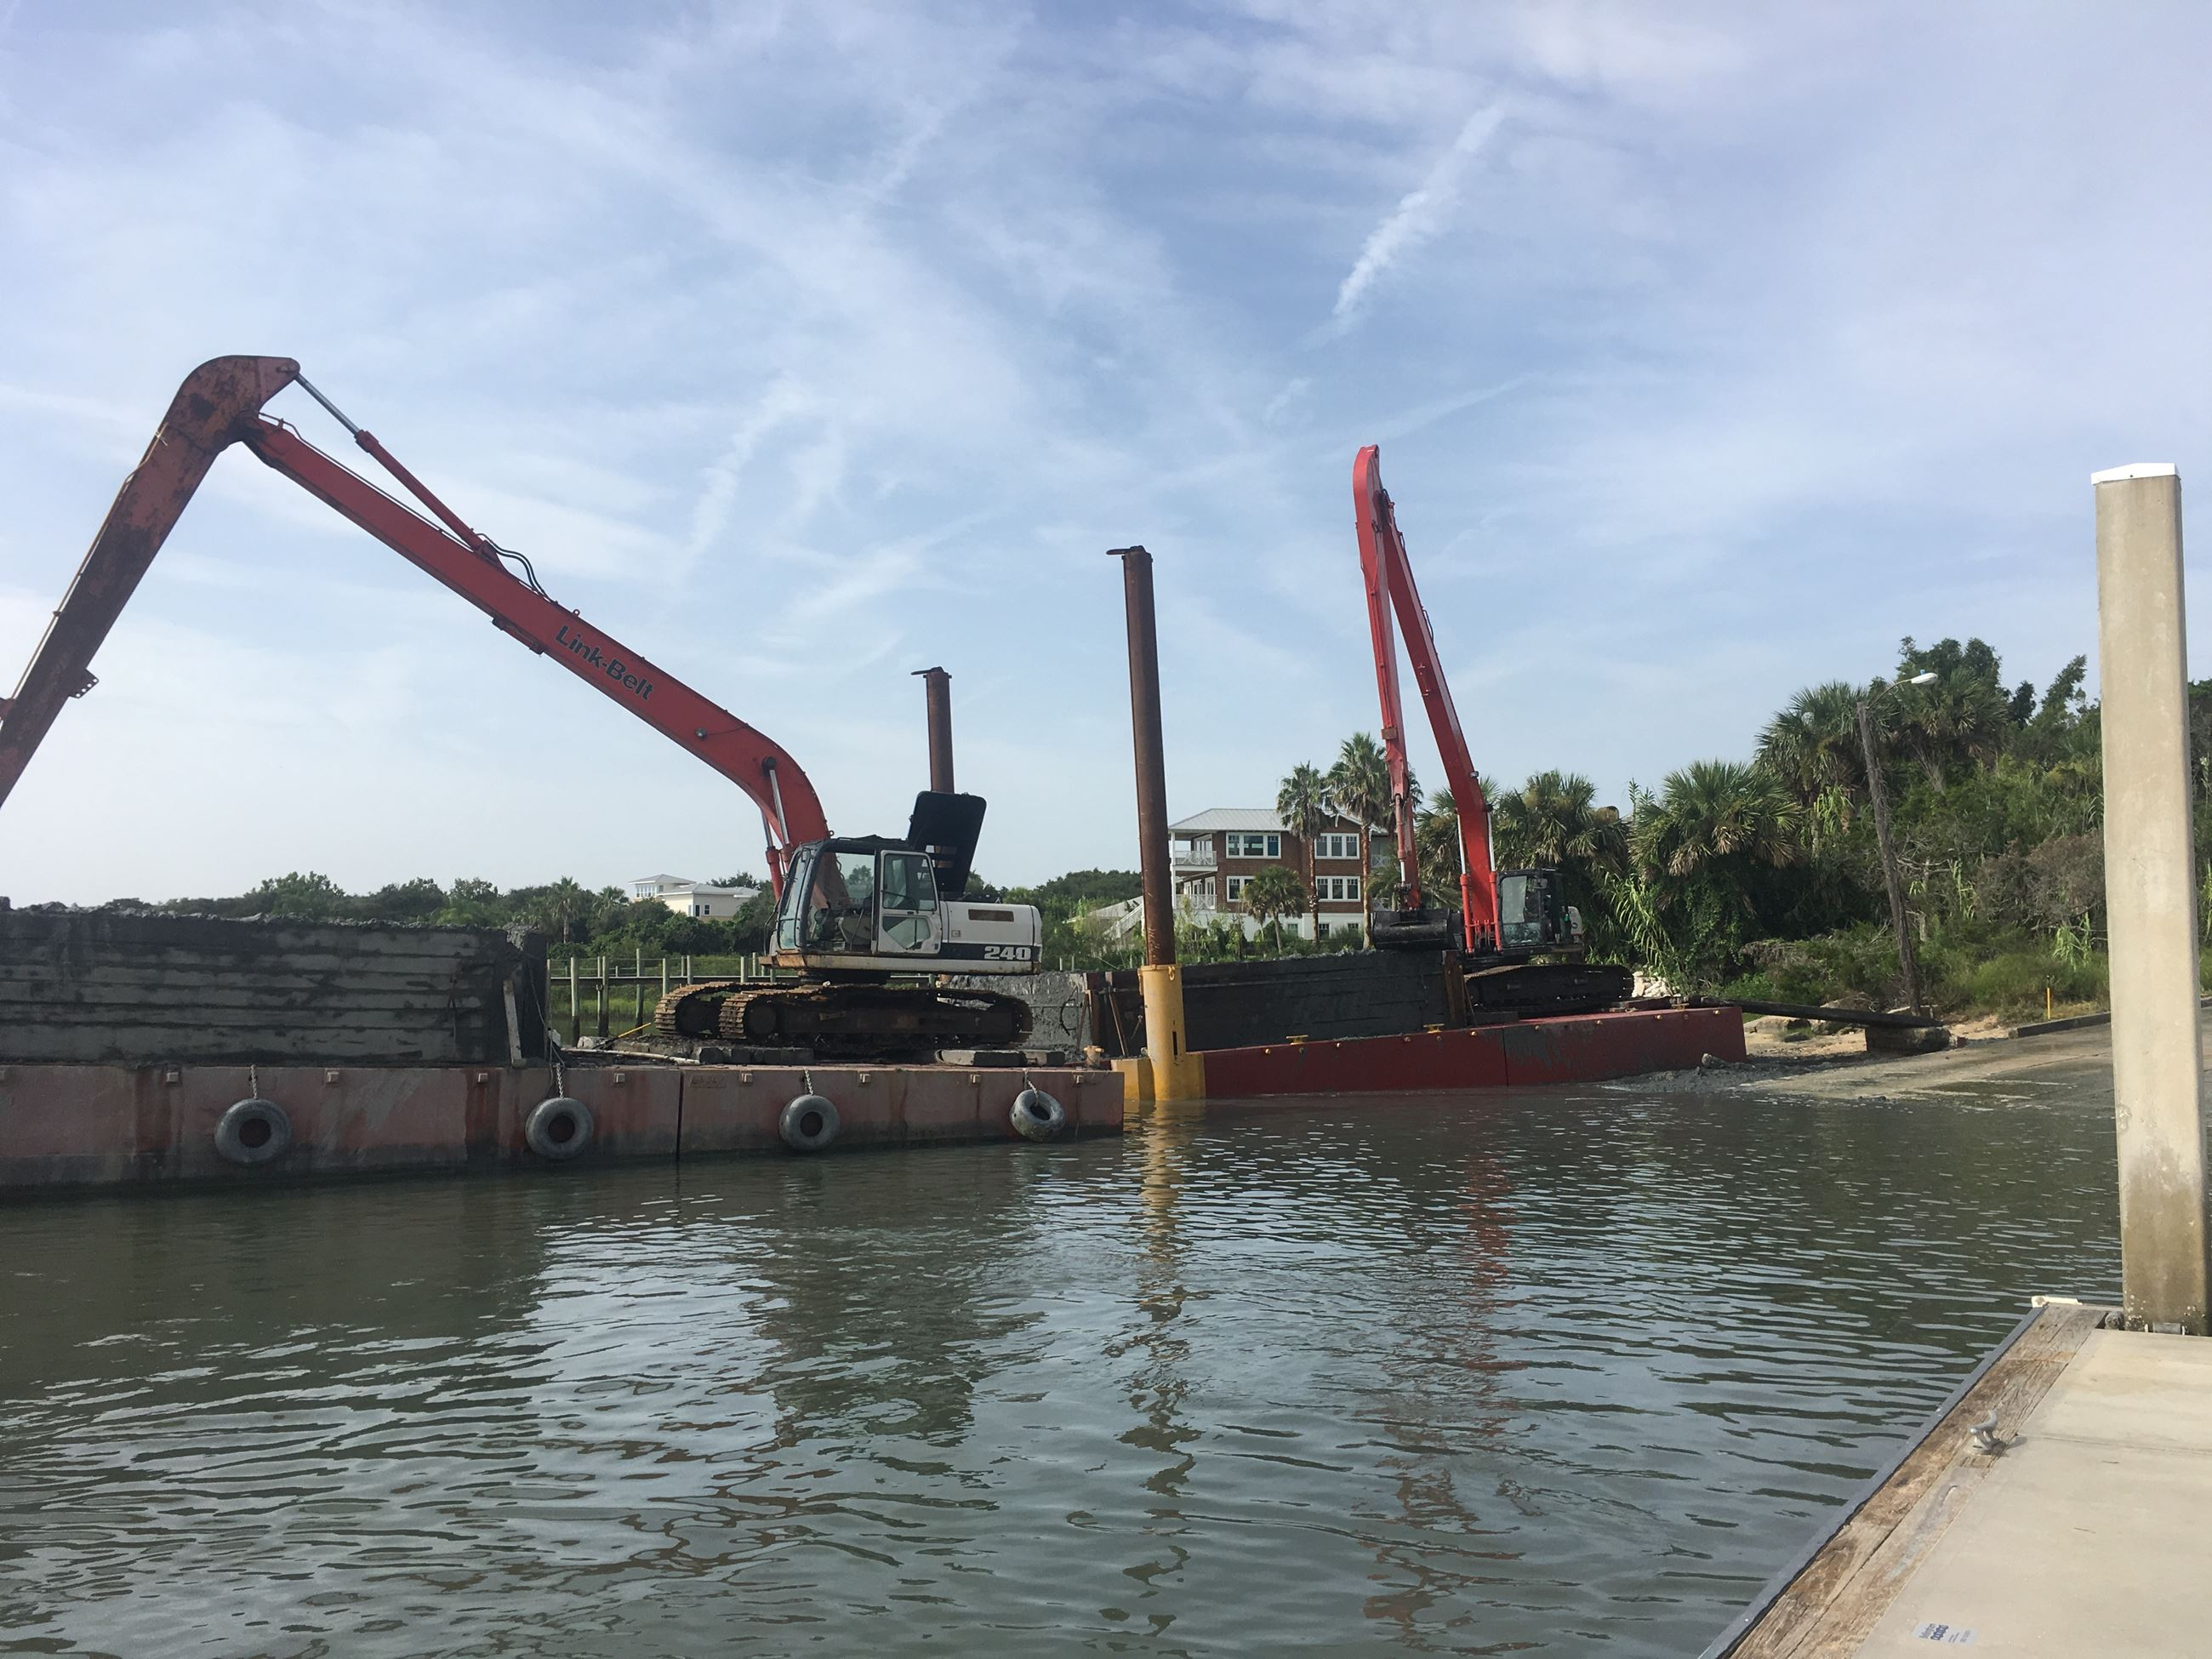 backhoe and crane equipment on a barge near a boat ramp